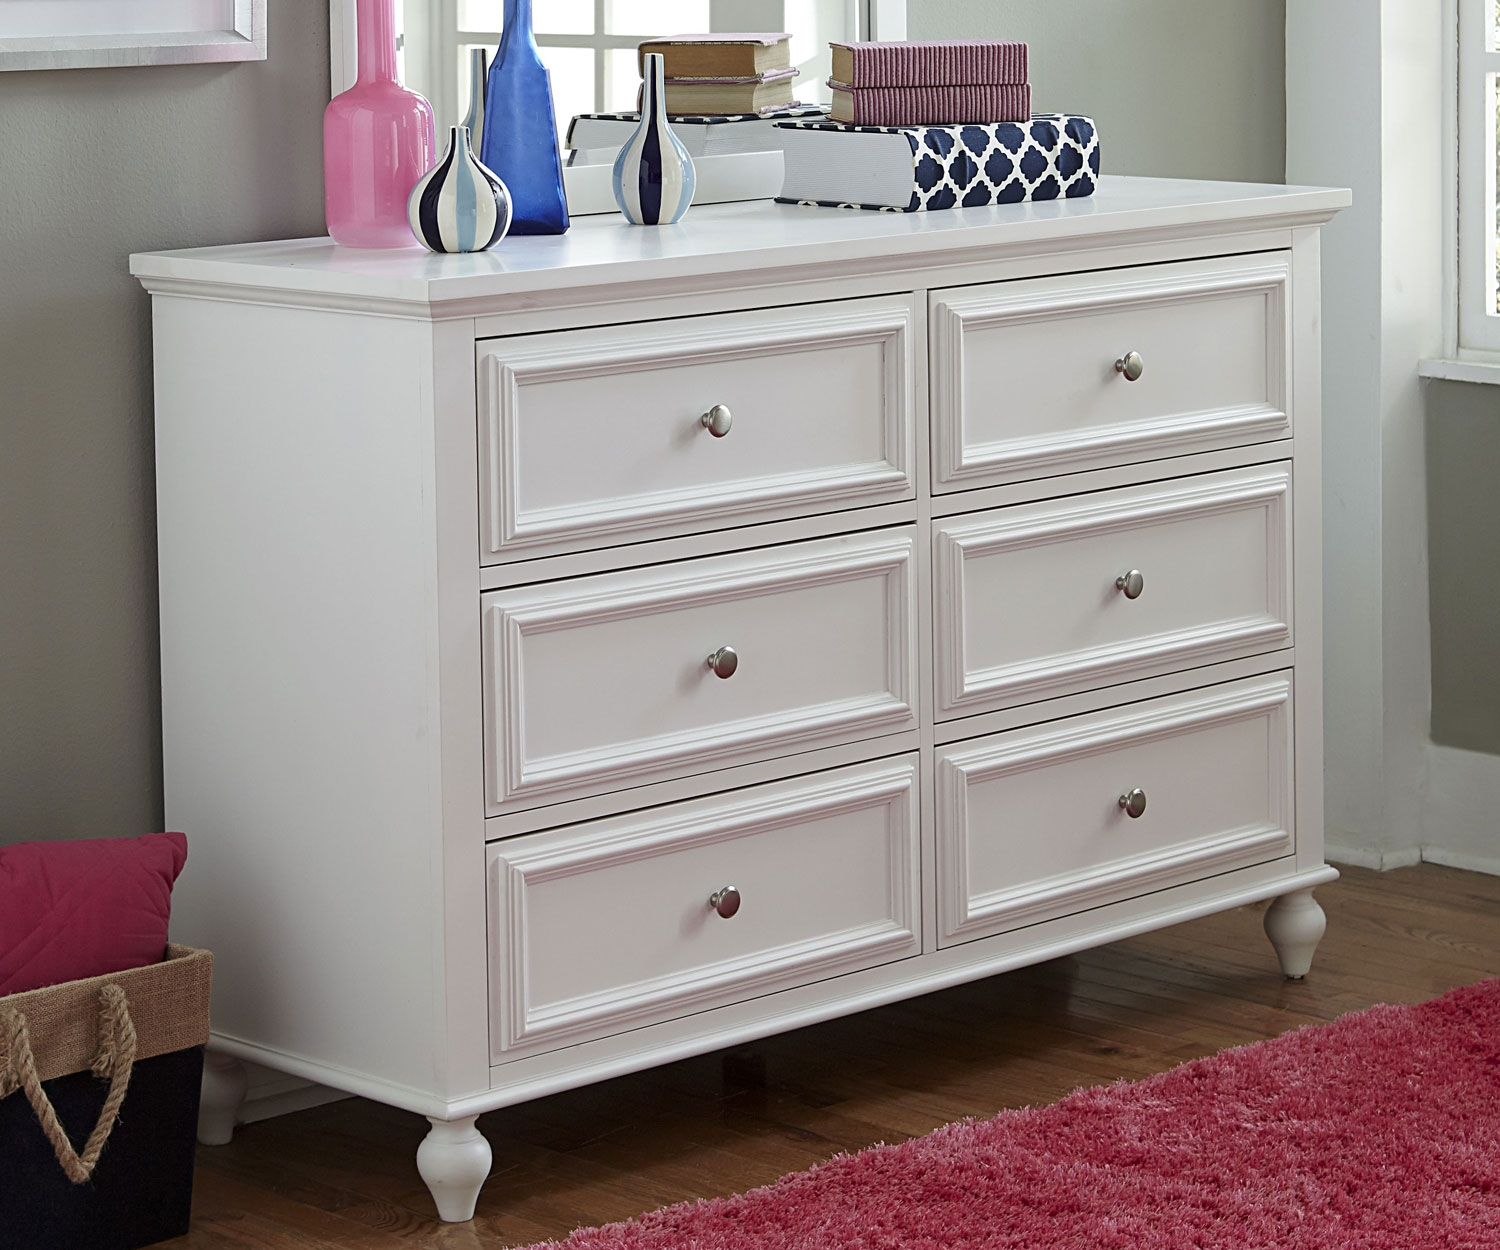 Ikea Hopen Dresser in White